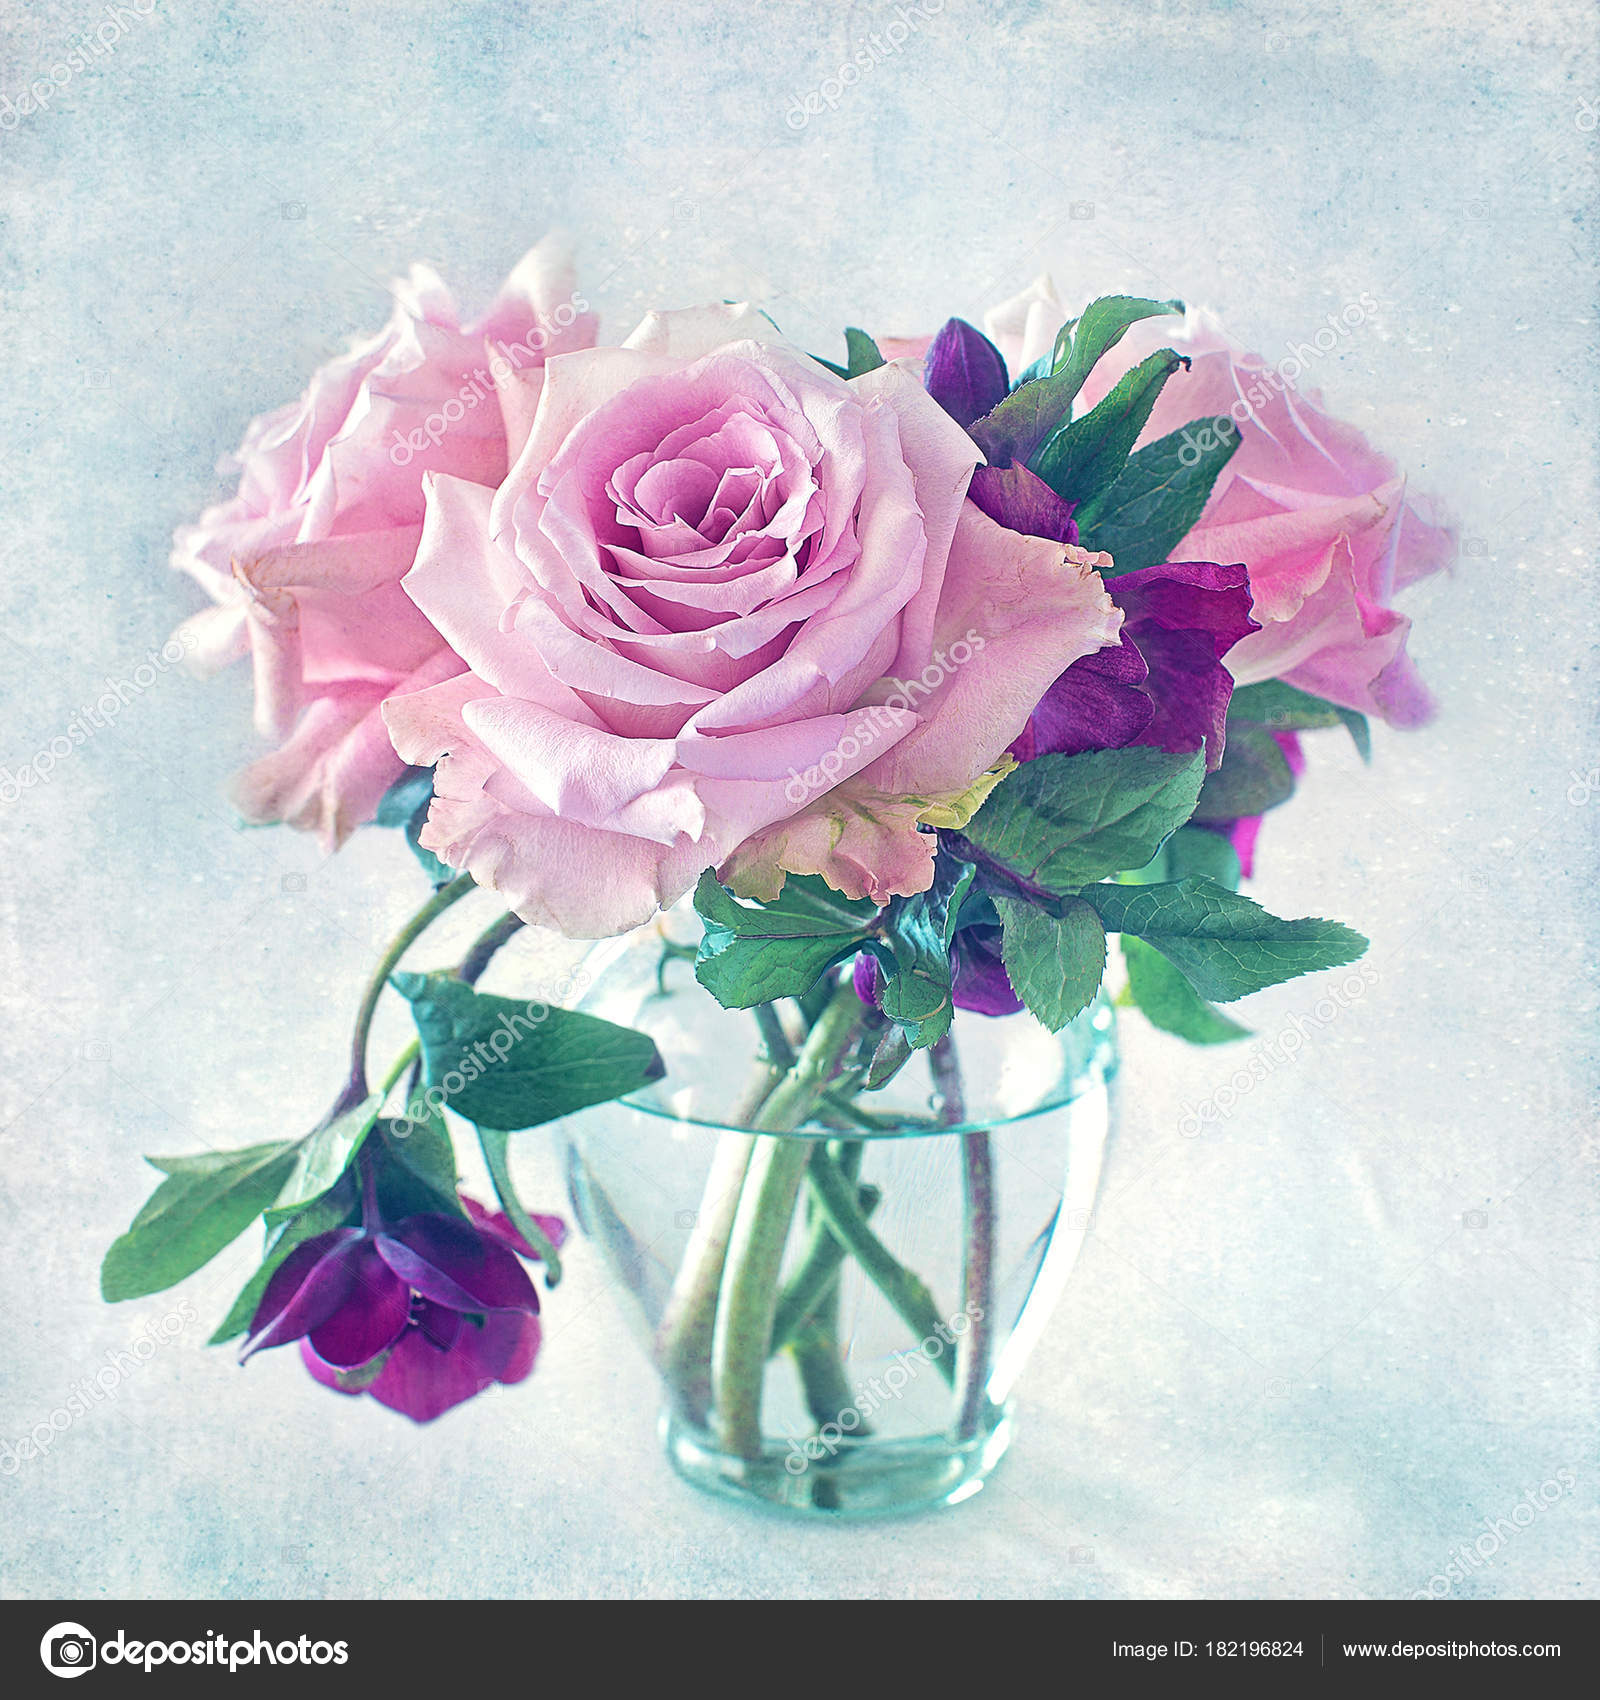 Close Floral Composition Pink Roses Beautiful Fresh Pink Roses Table